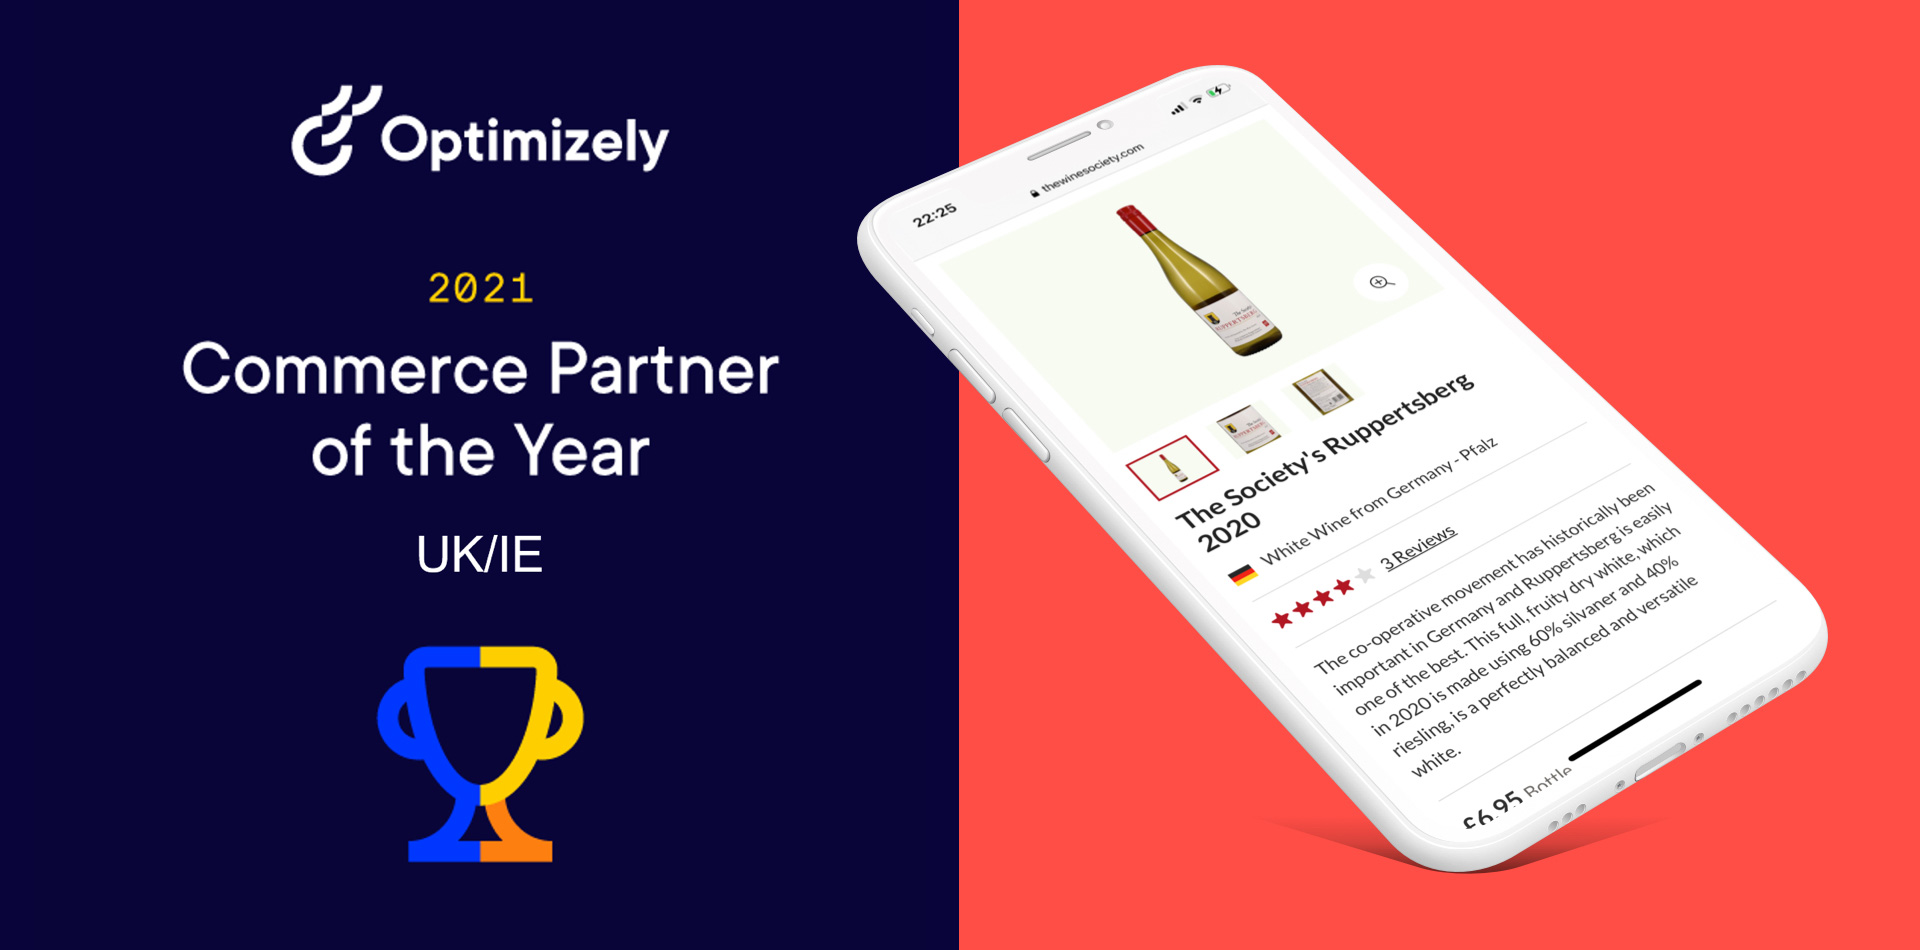 dotcentric - awarded Optimizely Commerce Partner of the Year in the UK/IE